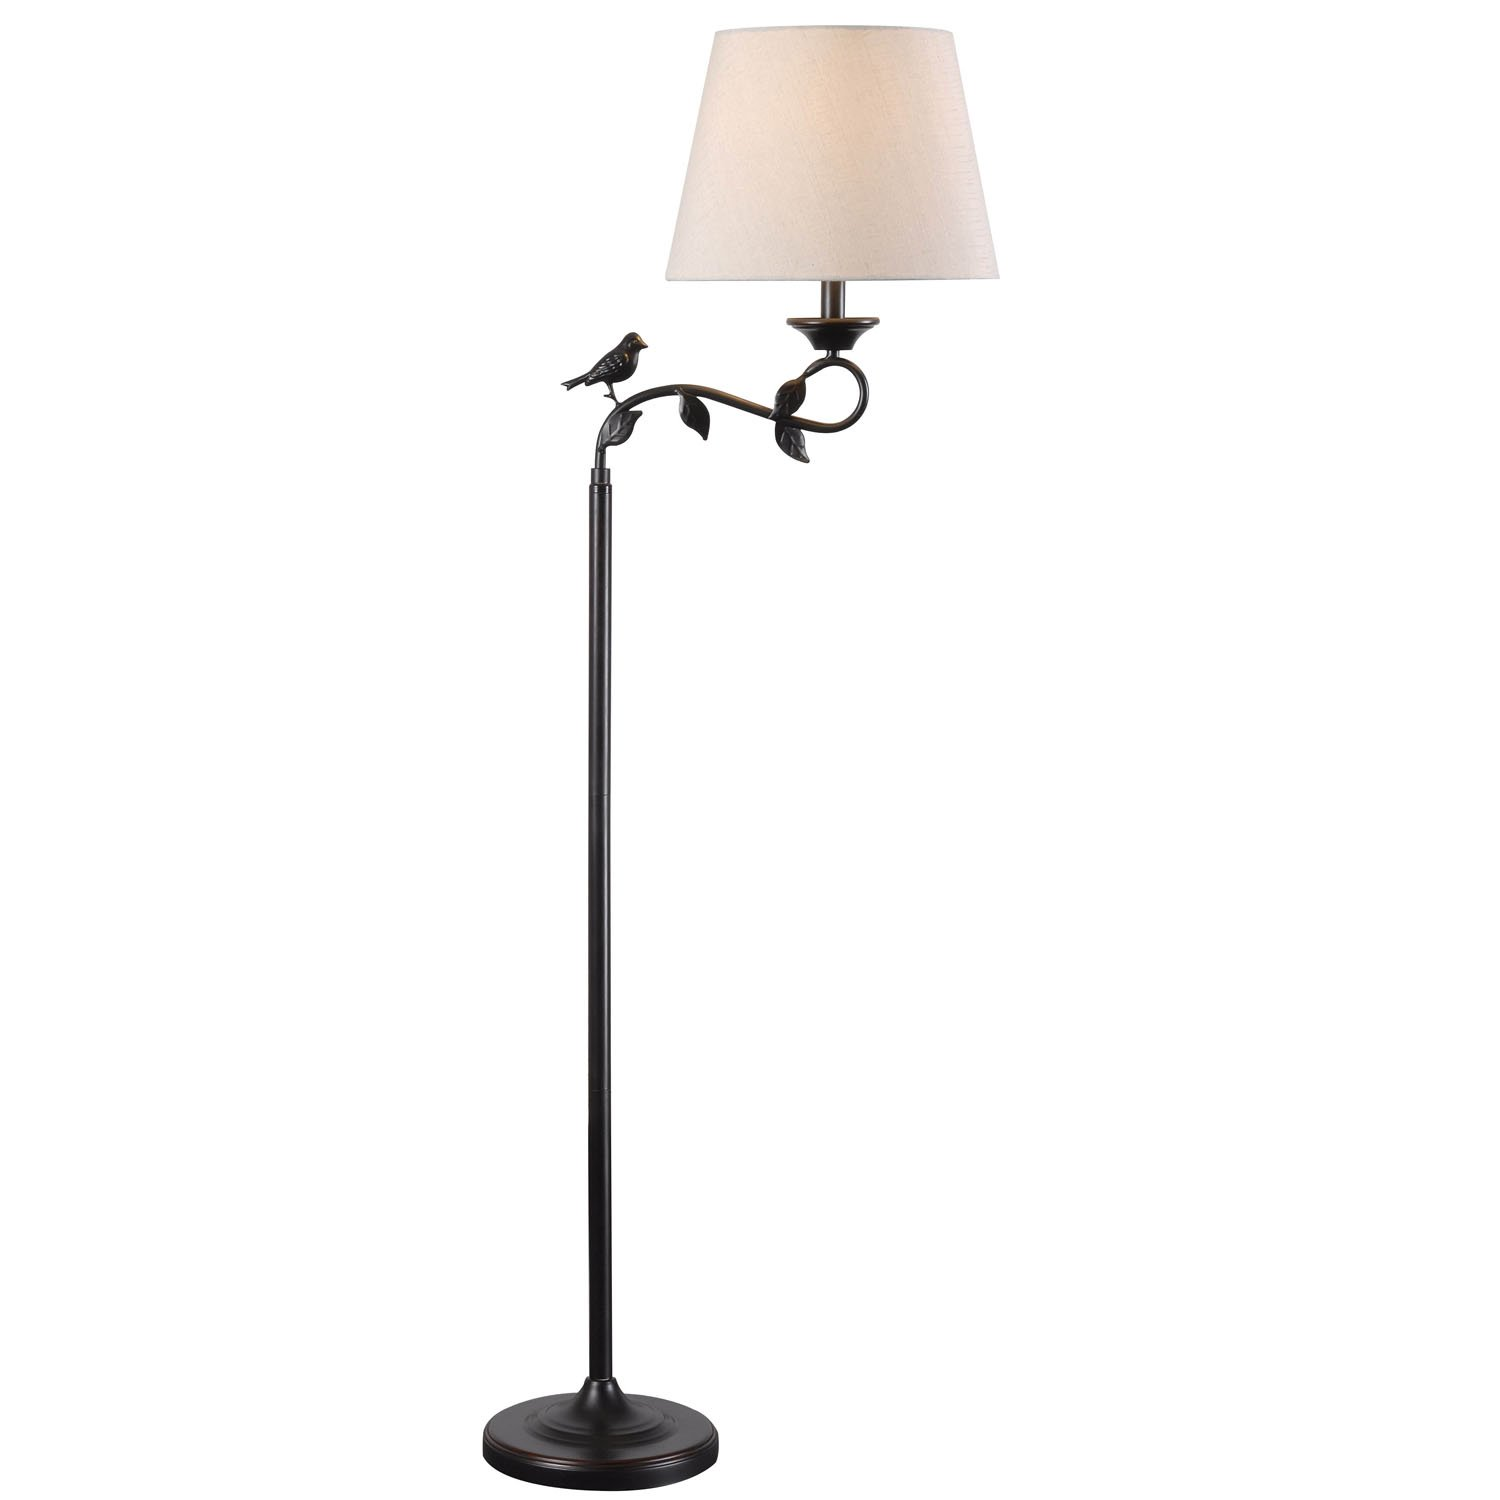 floors lamp walmart light pewter bronze reading with oil floor hampton gooseneck rubbed adjustable threshold bay